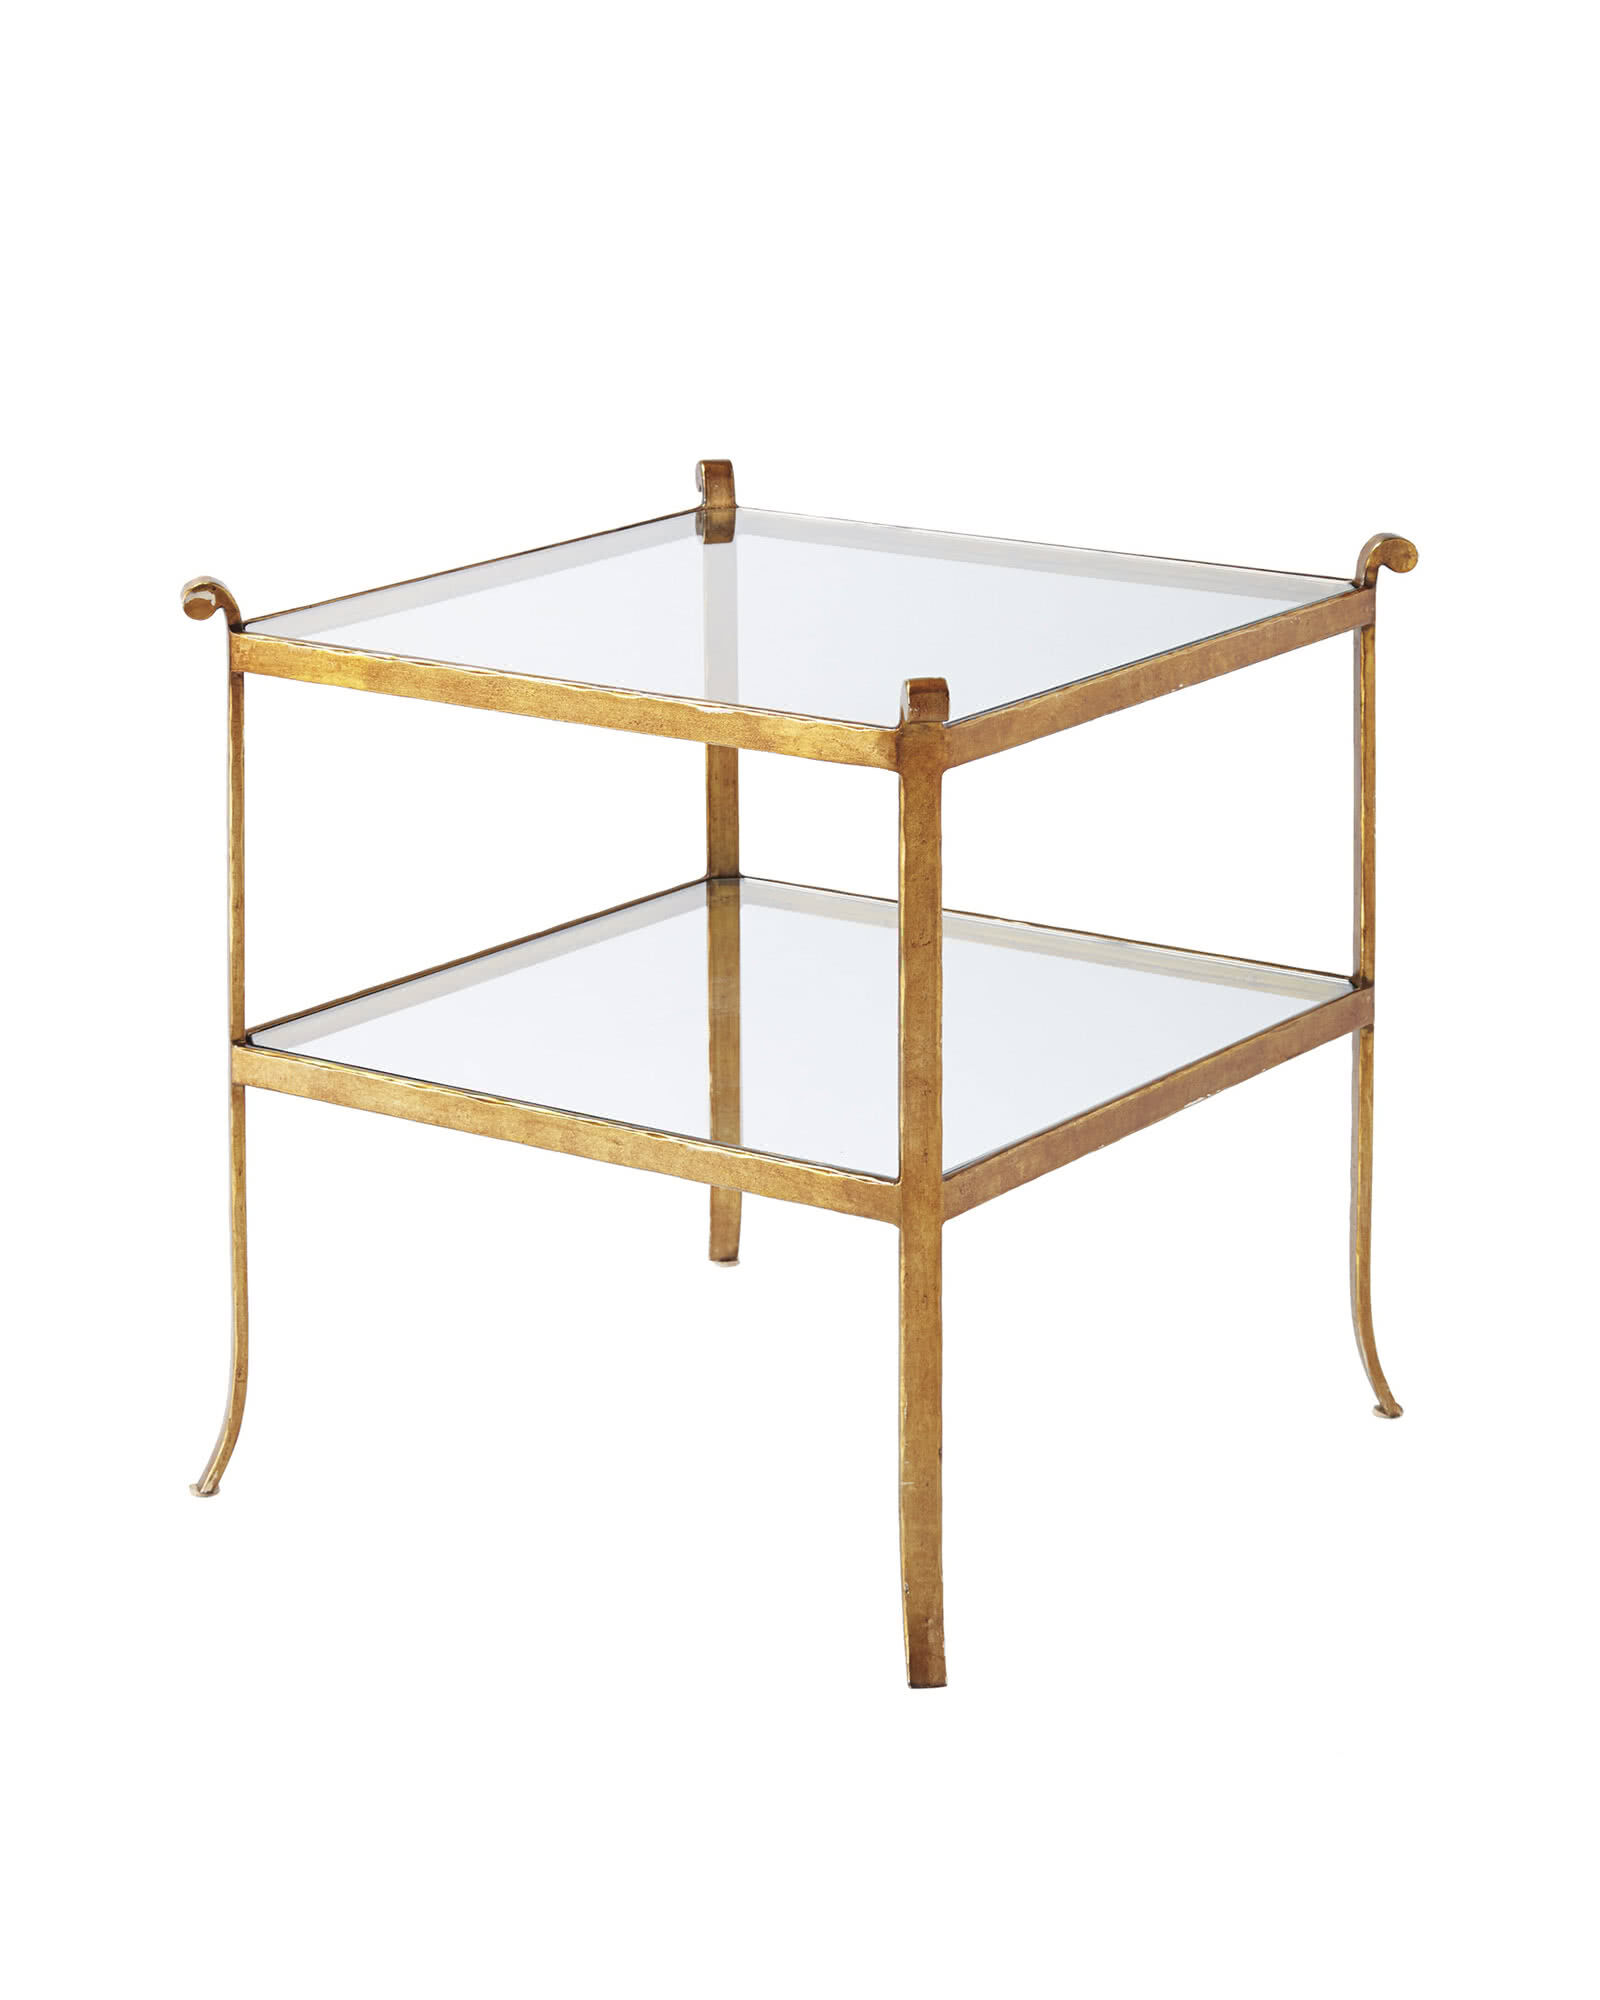 St. Germain Glass Side Table